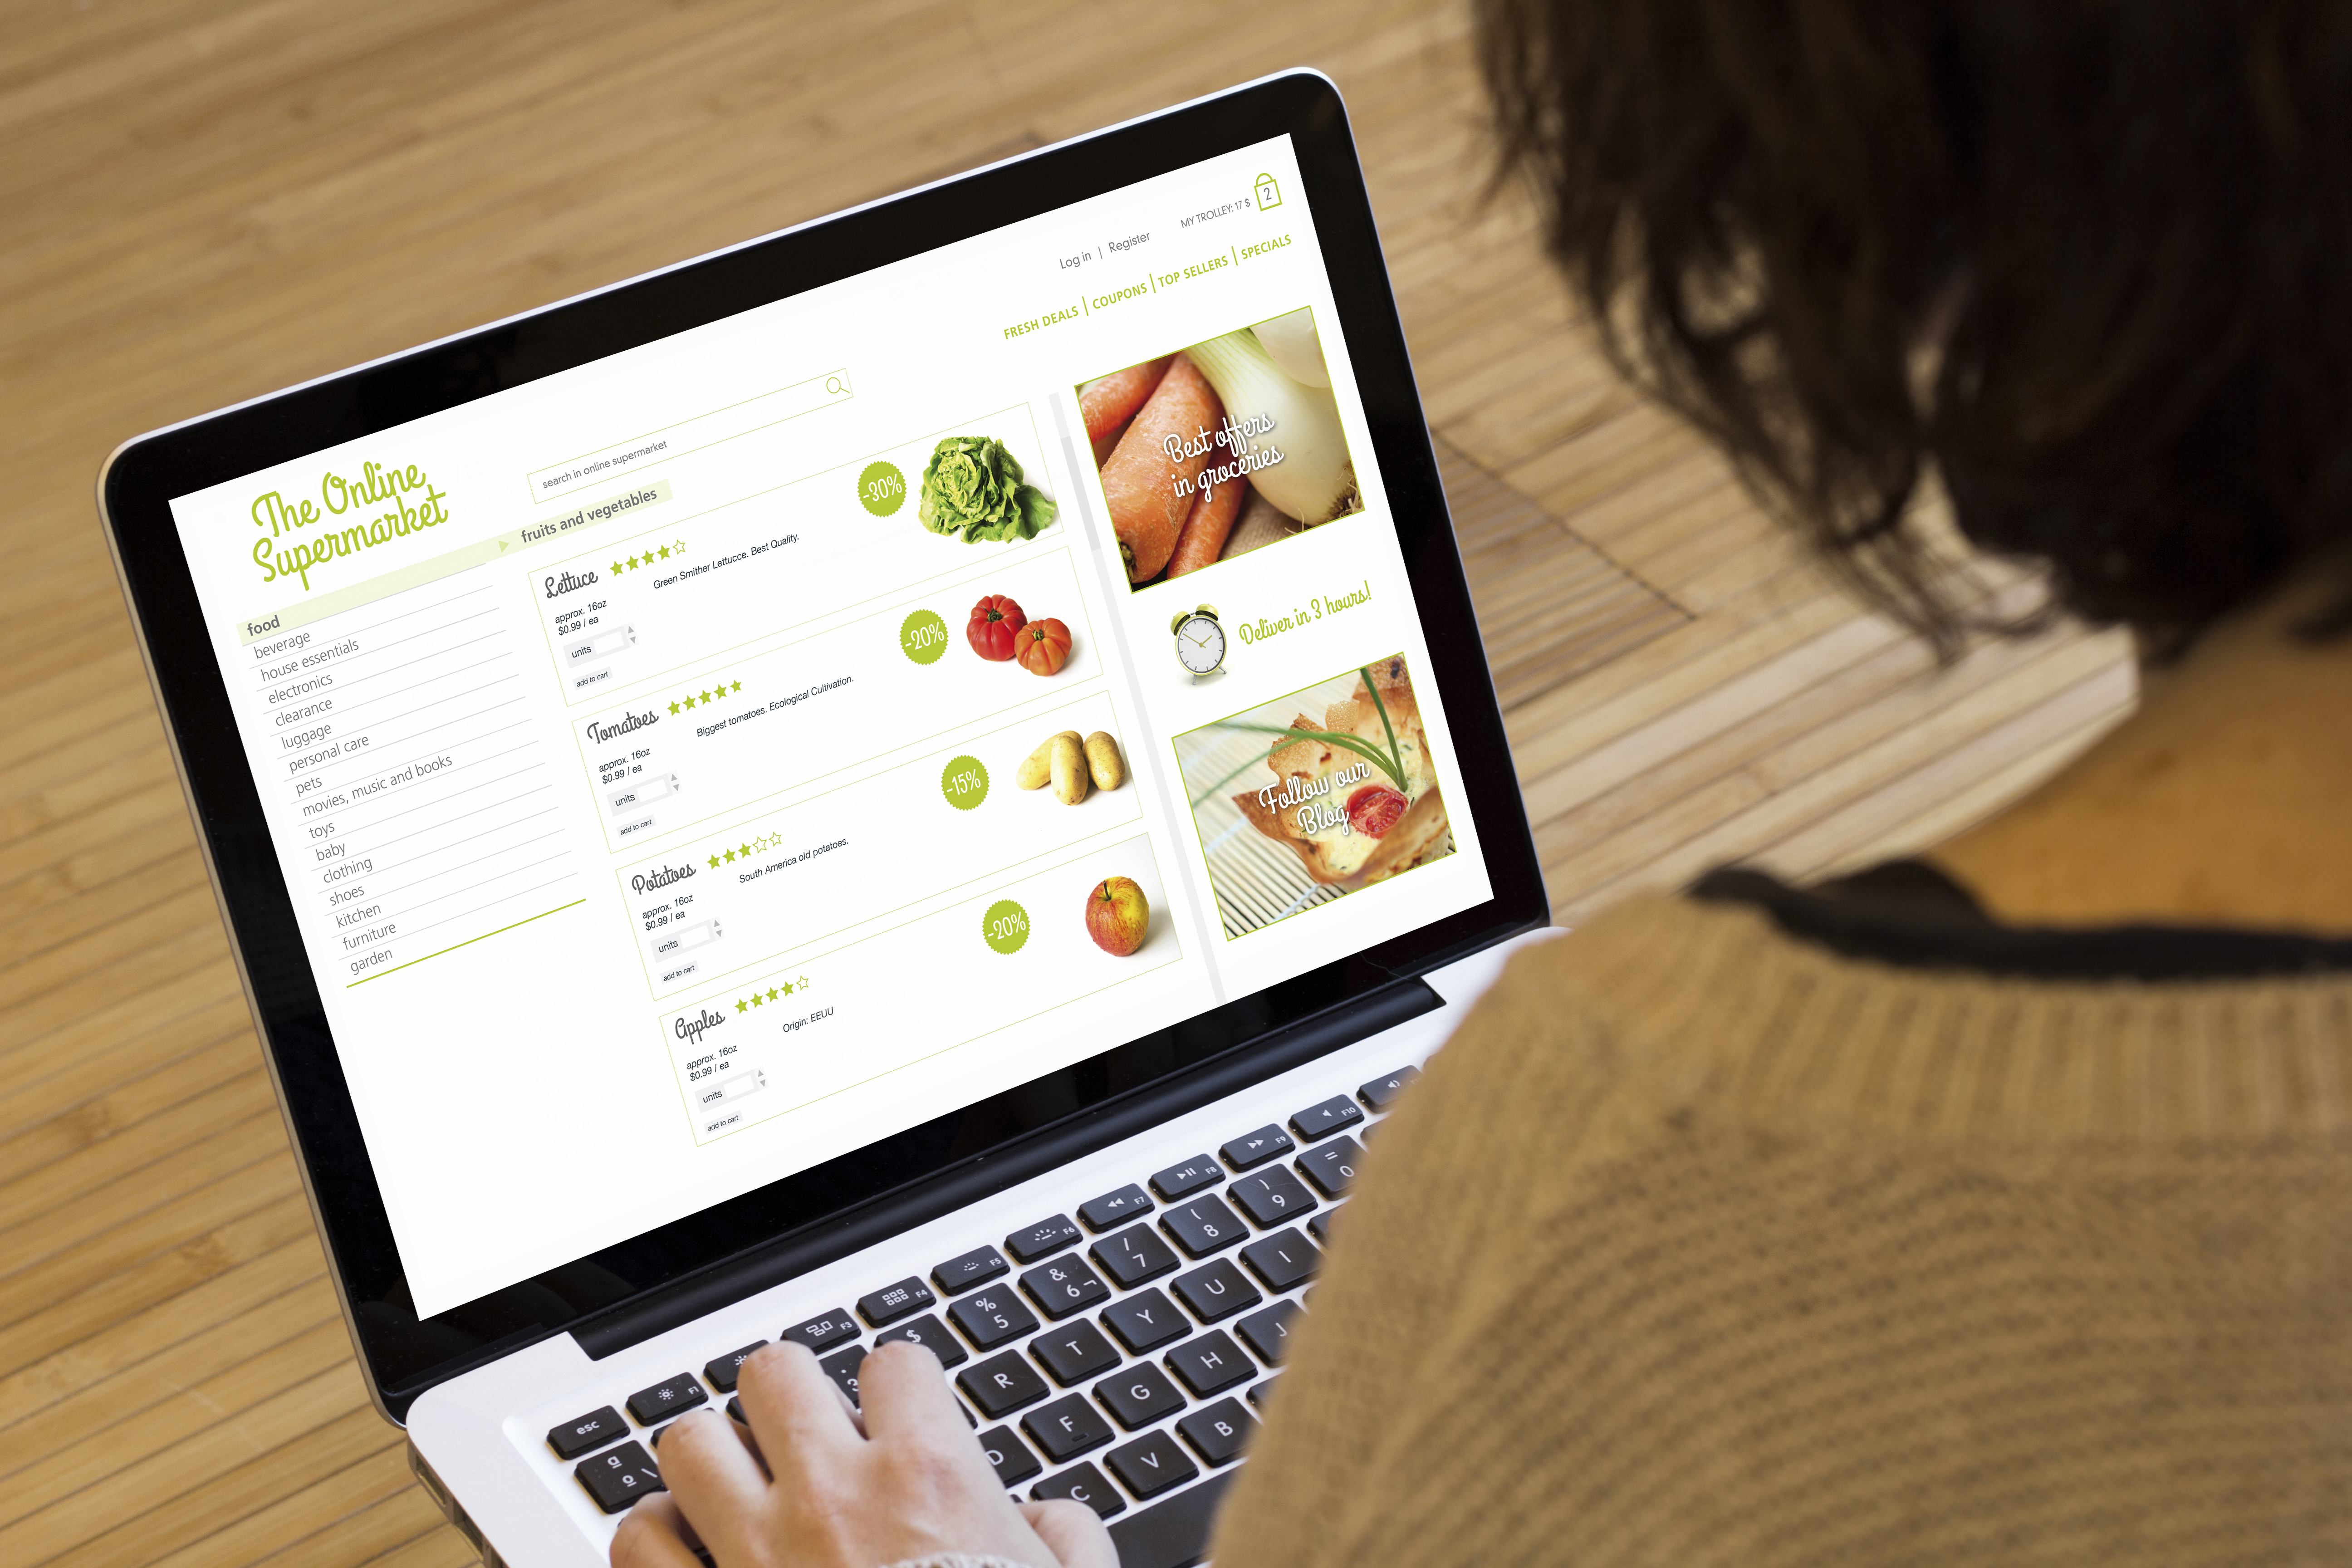 518b0e0d6 USDA Announces SNAP Online Purchasing Pilot in New York State - NYC ...